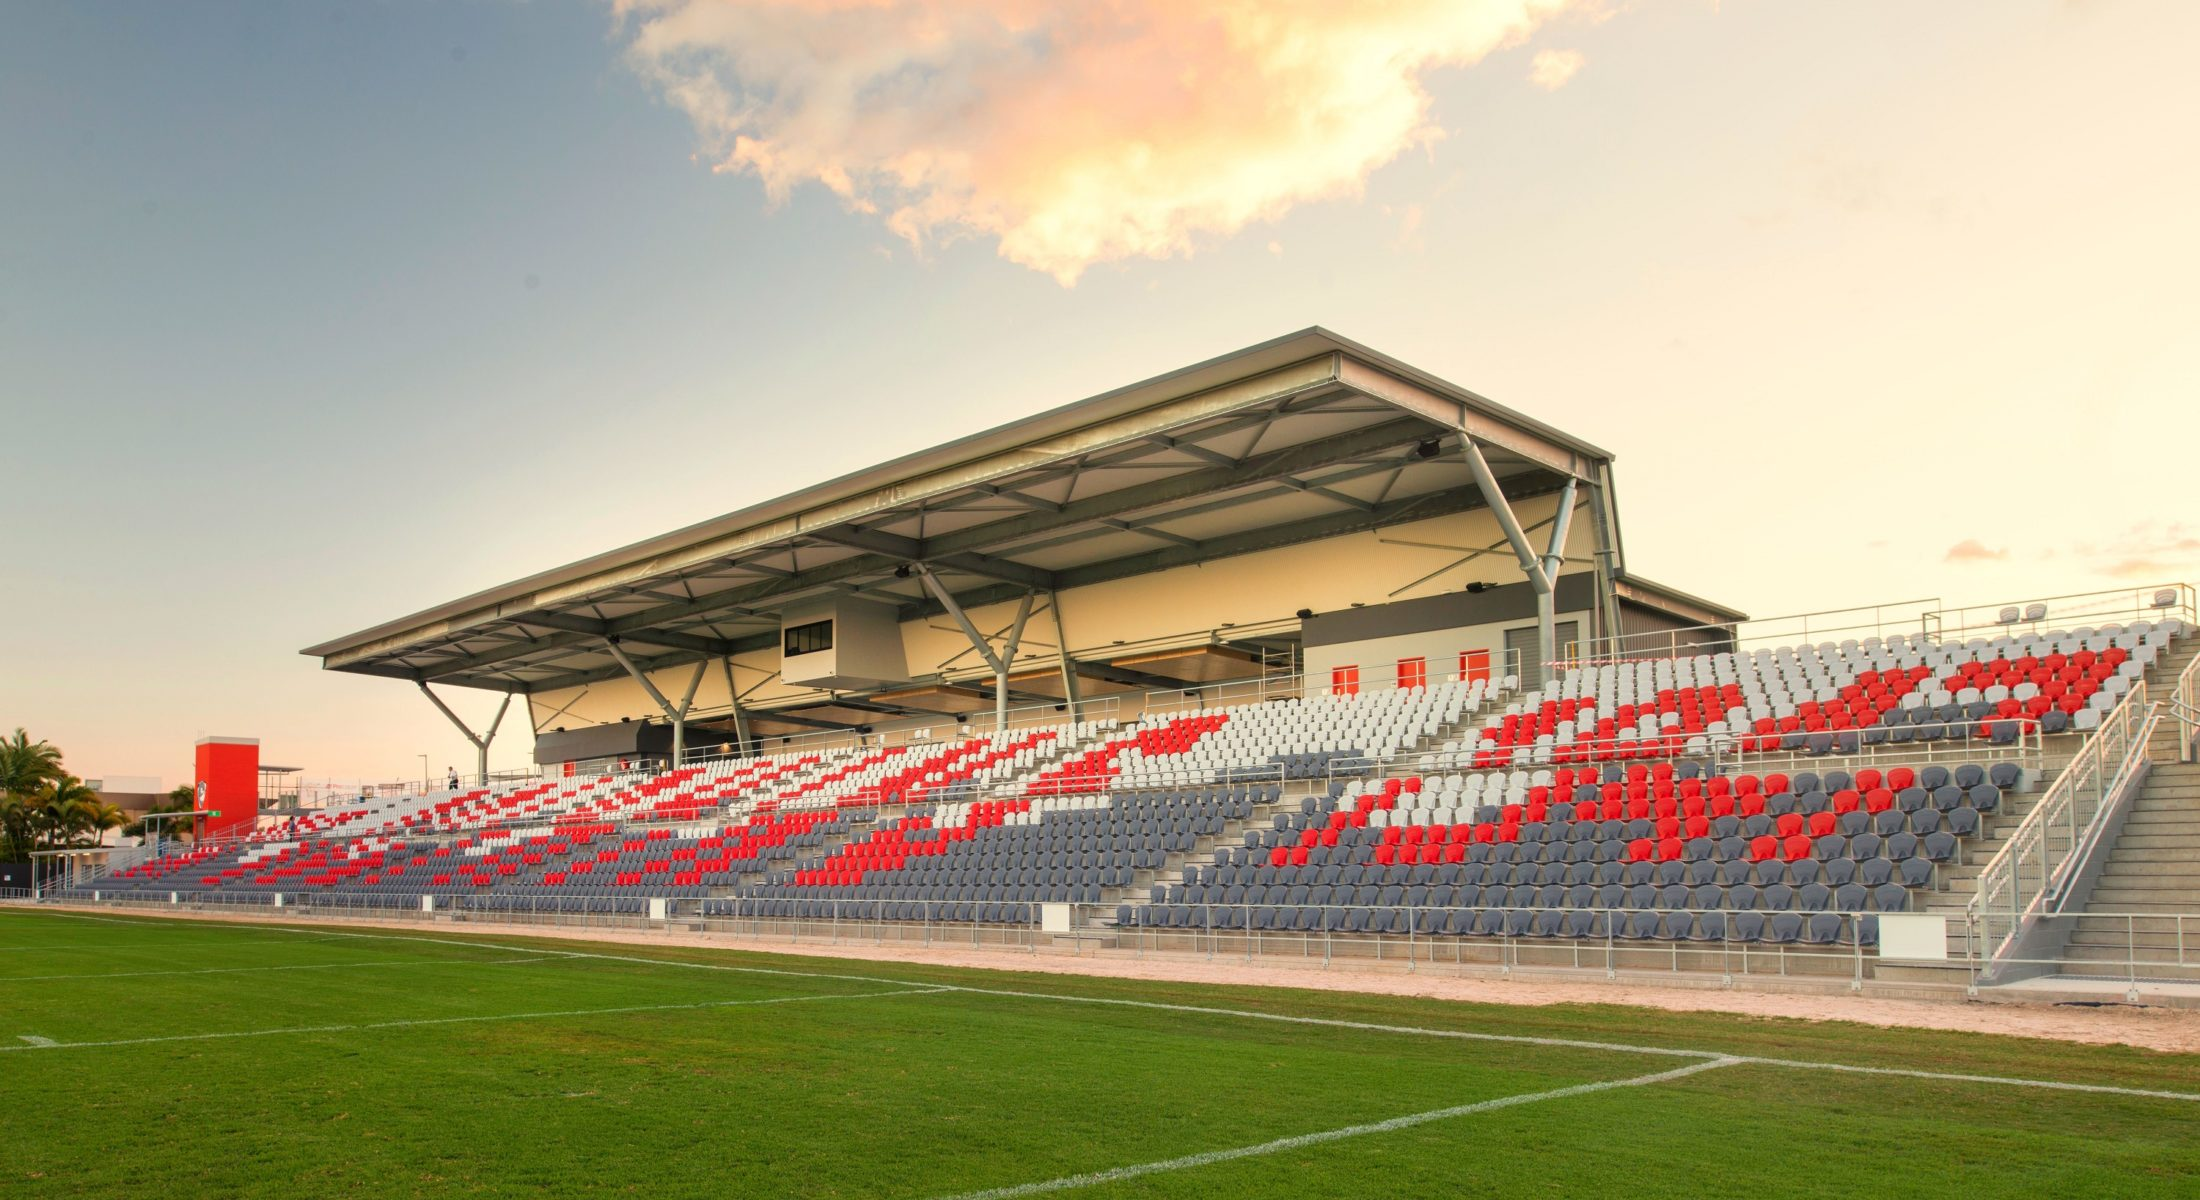 Redcliffe Dolphins Stadium Moreton Bay Region Near Brisbane New Stadium